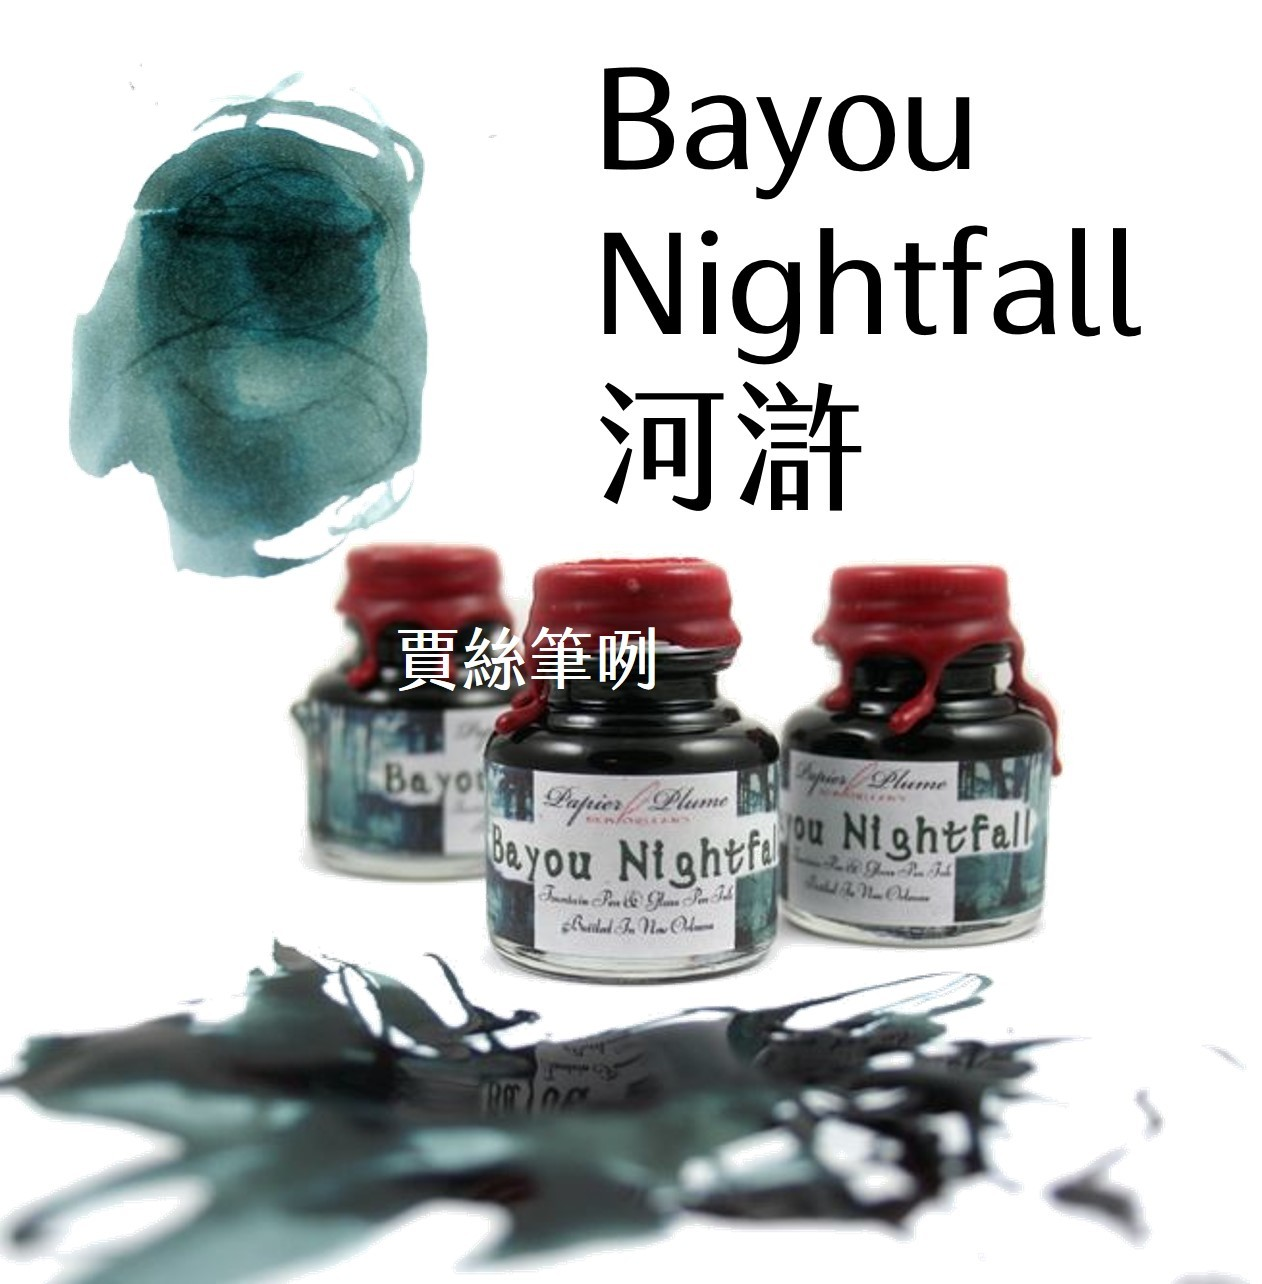 NO - Bayou Nightfall 河滸.jpg